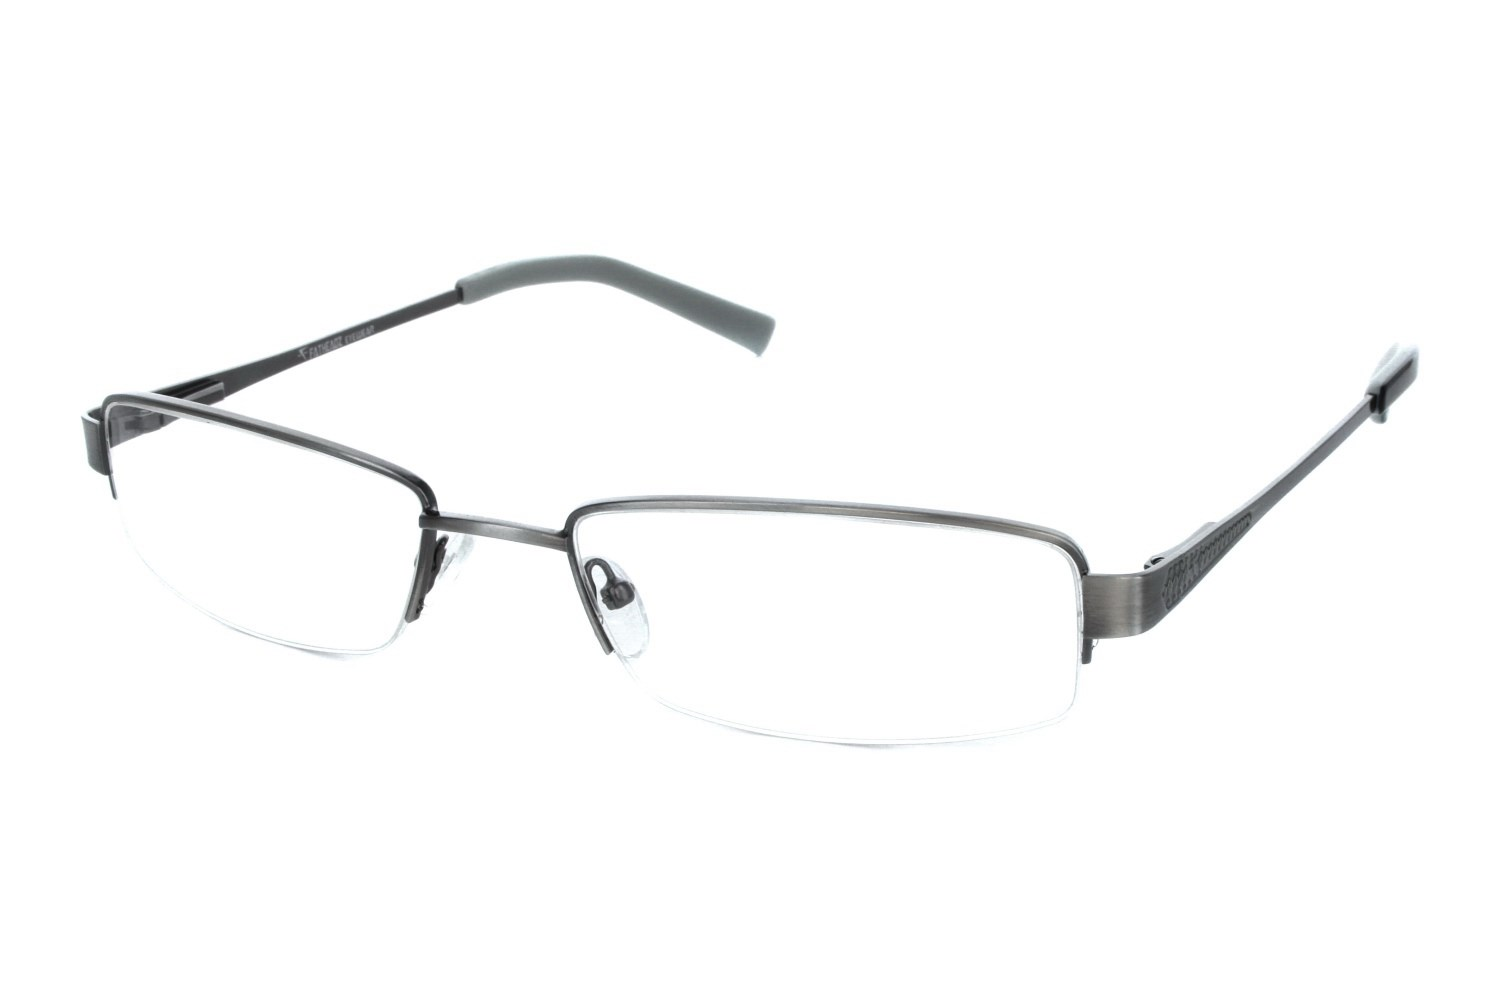 Fatheadz Luc Prescription Eyeglasses Frames